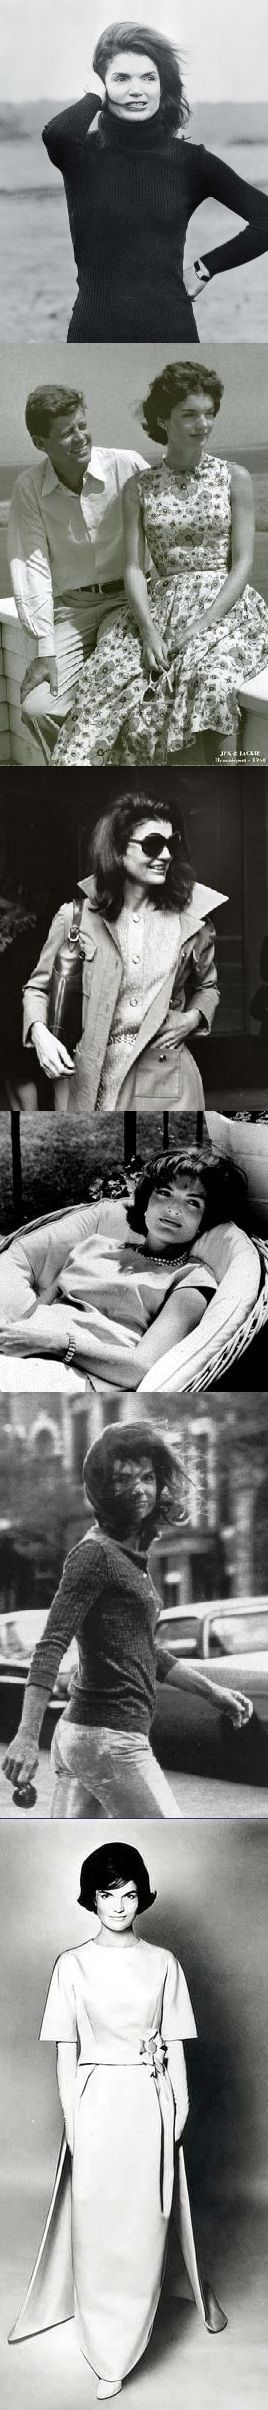 Jackie Kennedy OnassisJackie Kennedy, Jacqueline Kennedy Onassis, The Kennedys, Fashion Icons, Style Icons, Jackie Onassis, White House, First Lady, My Style